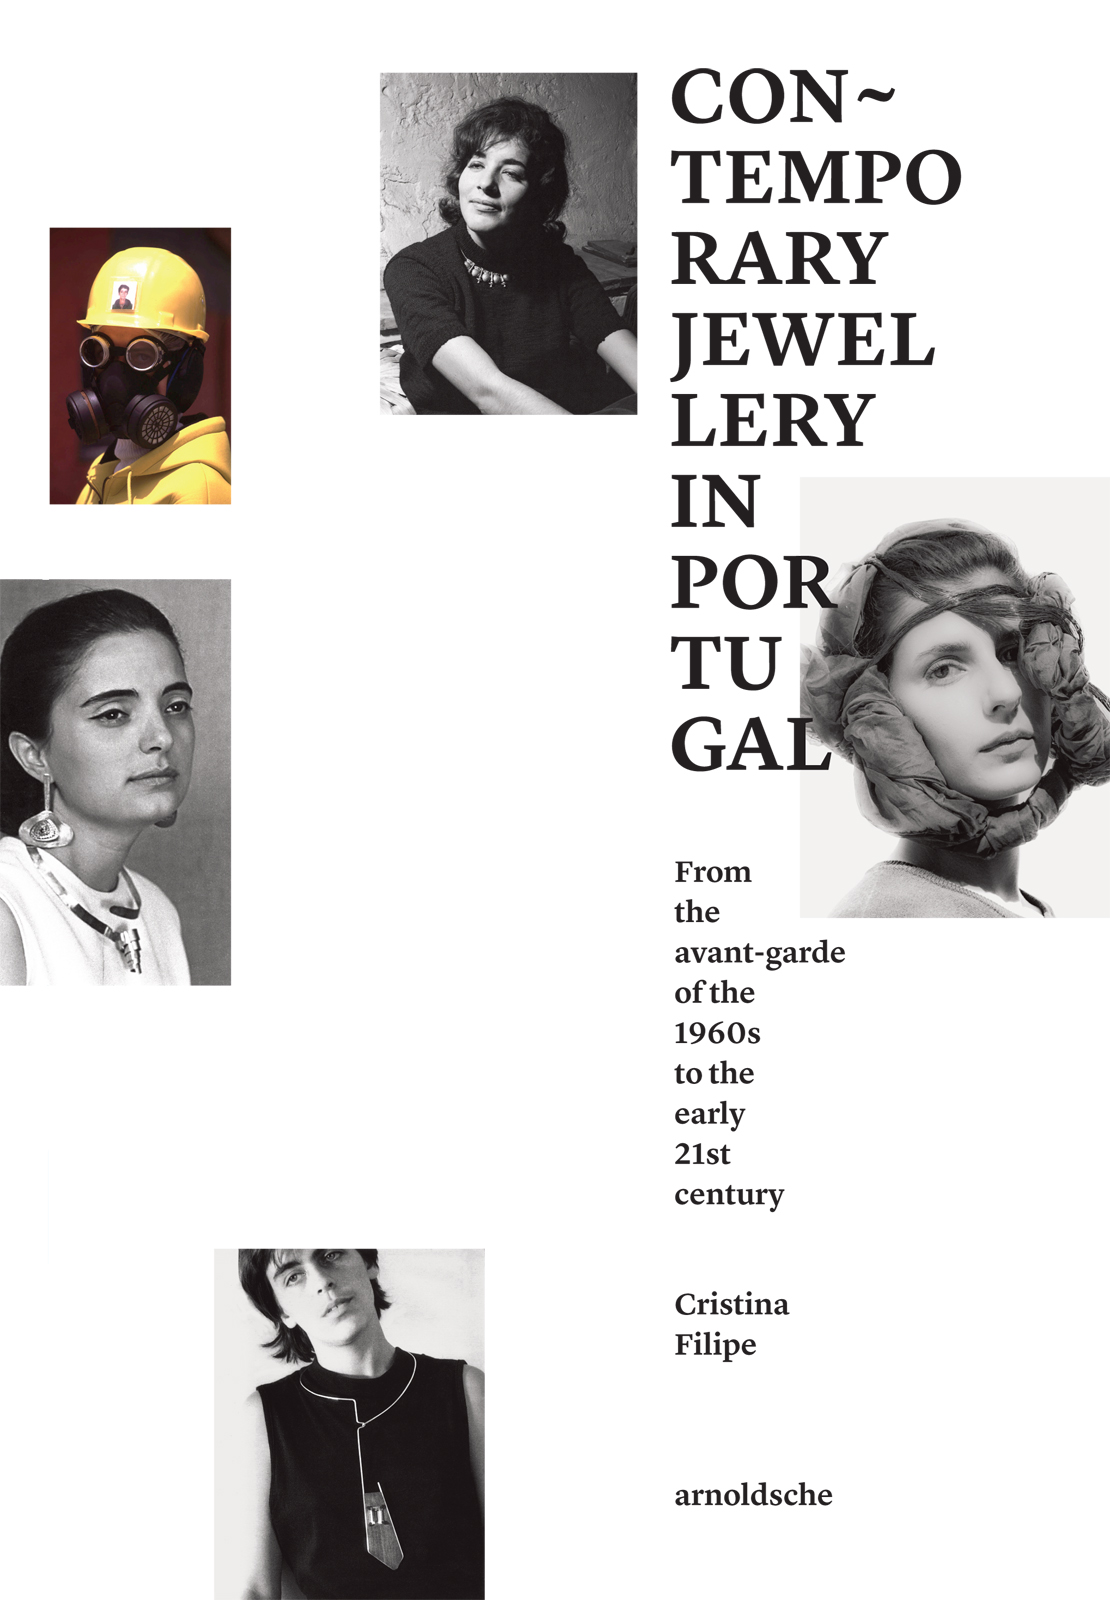 Cristina Filipe, Contemporary Jewellery in Portugal, From the avant-garde of the 1960s to the early 21st Century, 2019, omslag